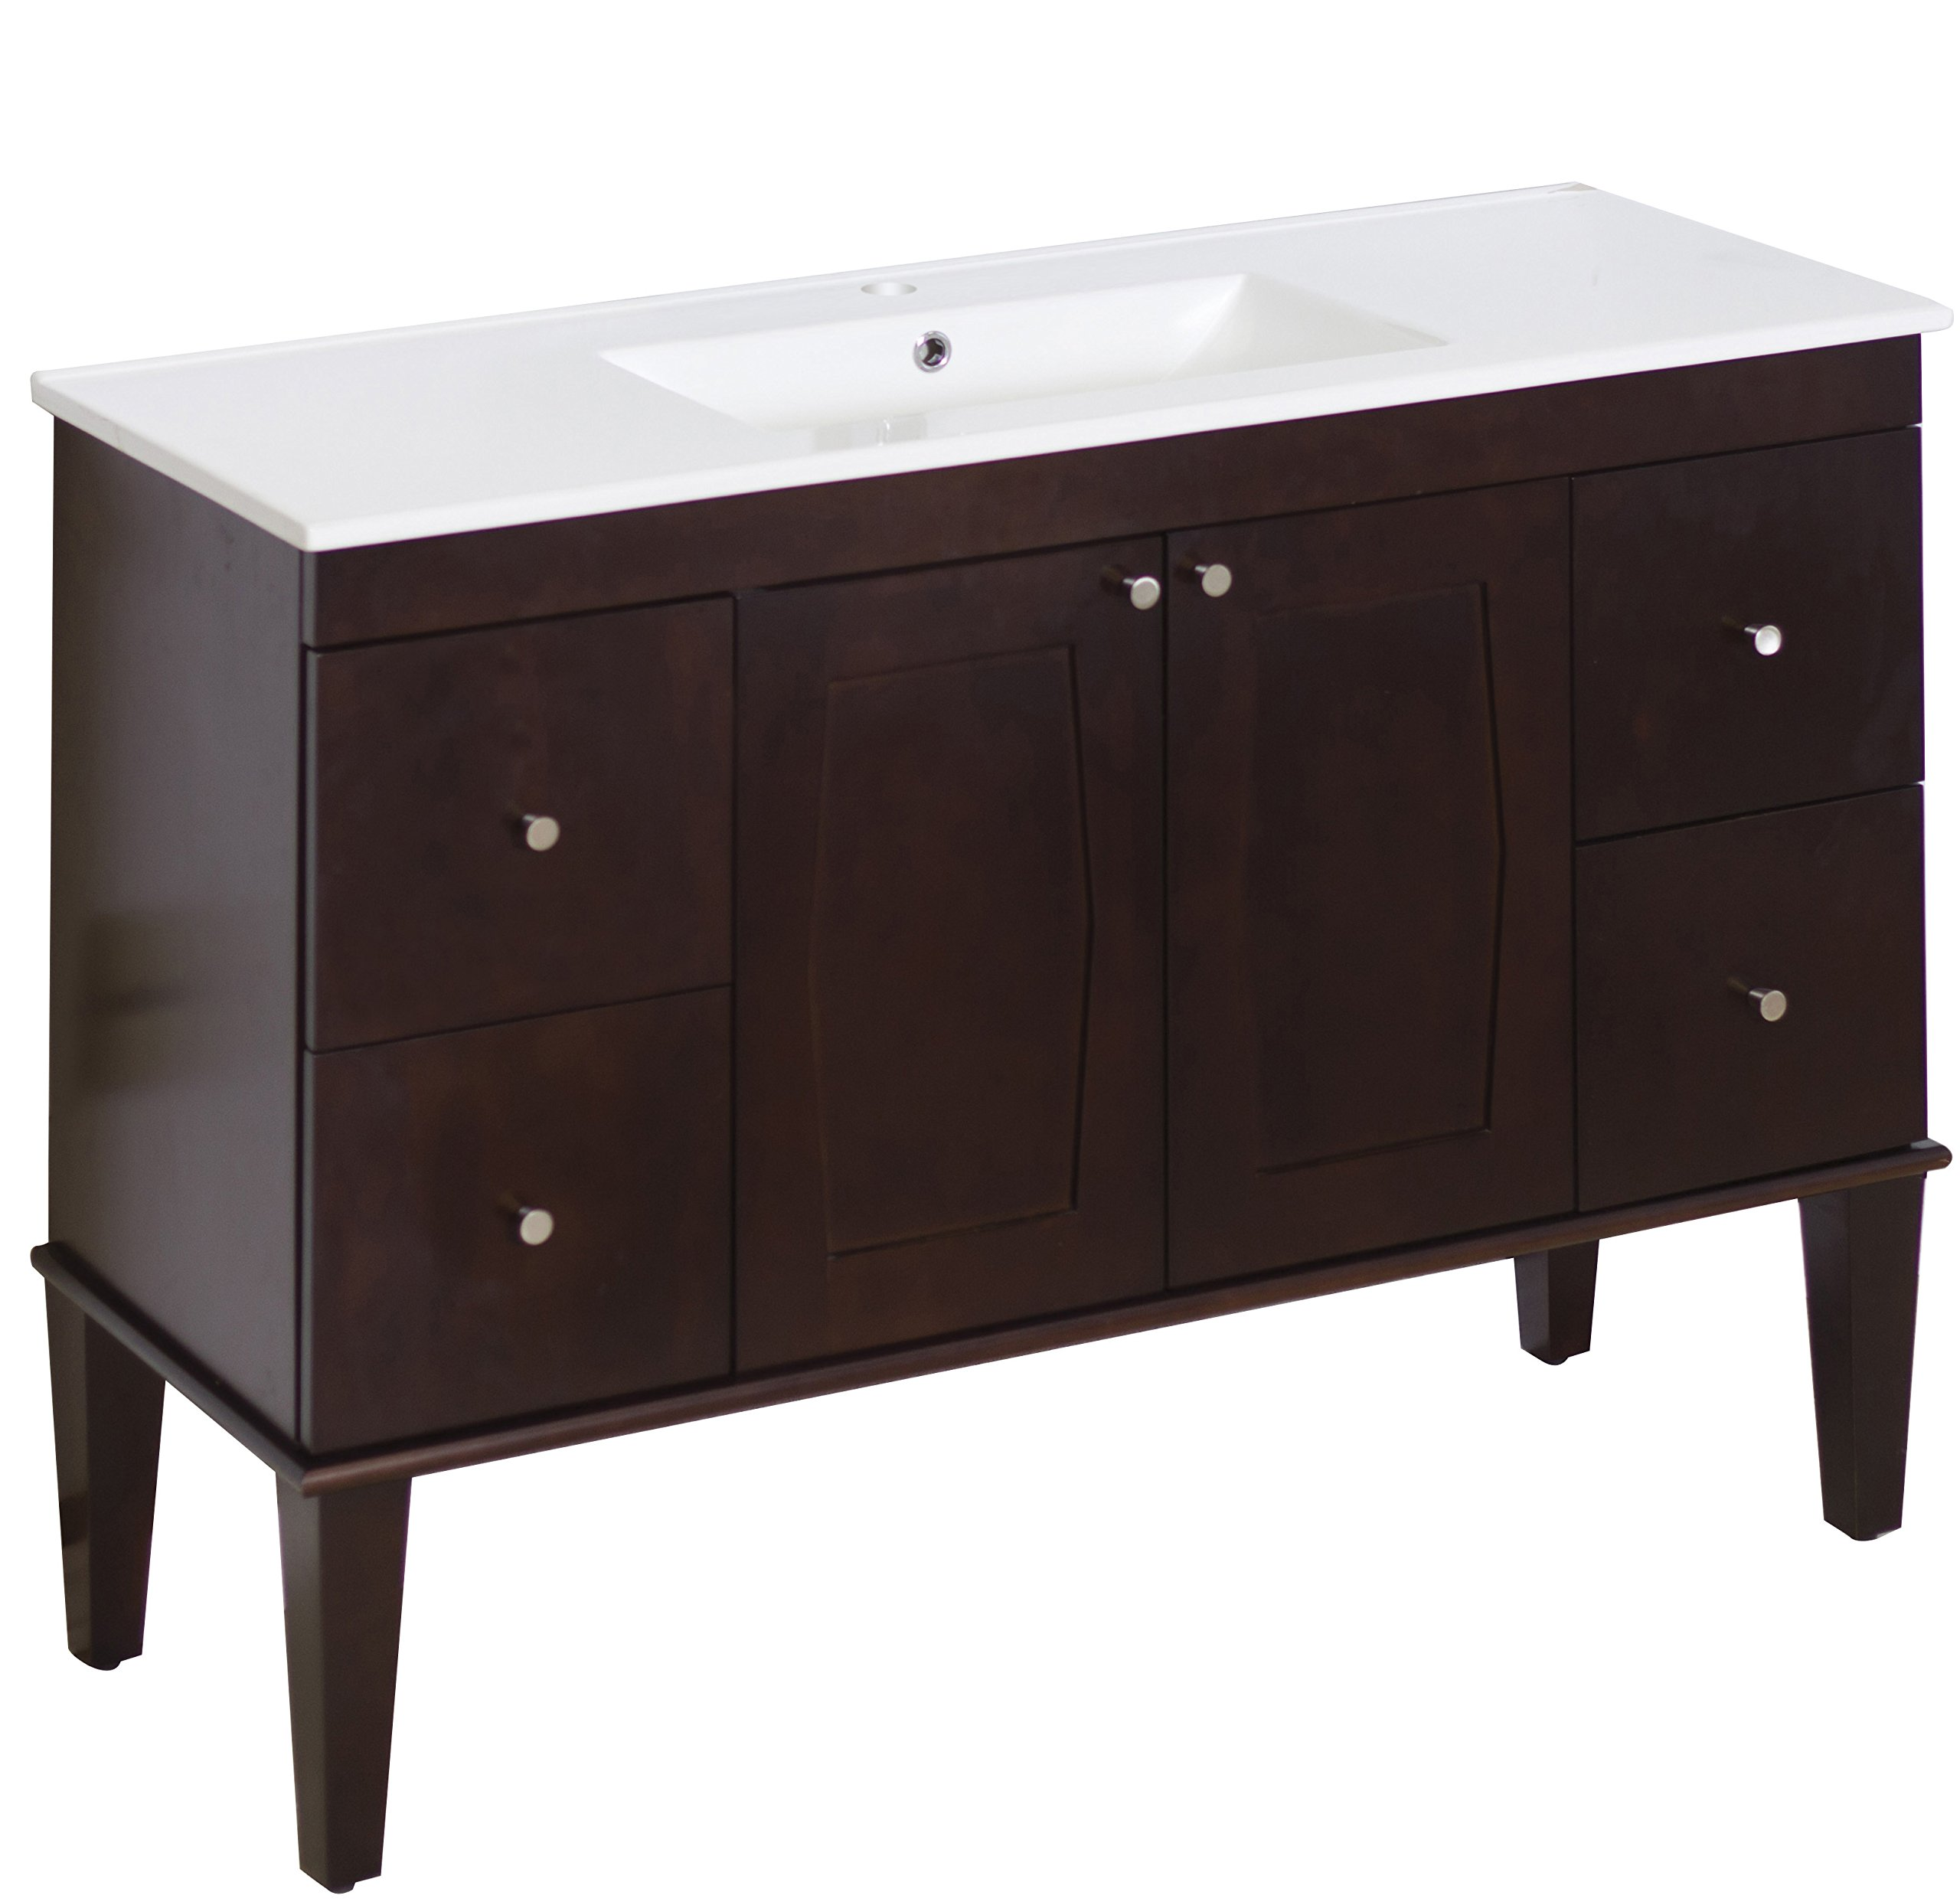 American Imaginations 517   48-Inch W X 18-Inch D Solid Wood Vanity with Soft-Close Doors and White Ceramic Top for Single Hole Faucet Installation